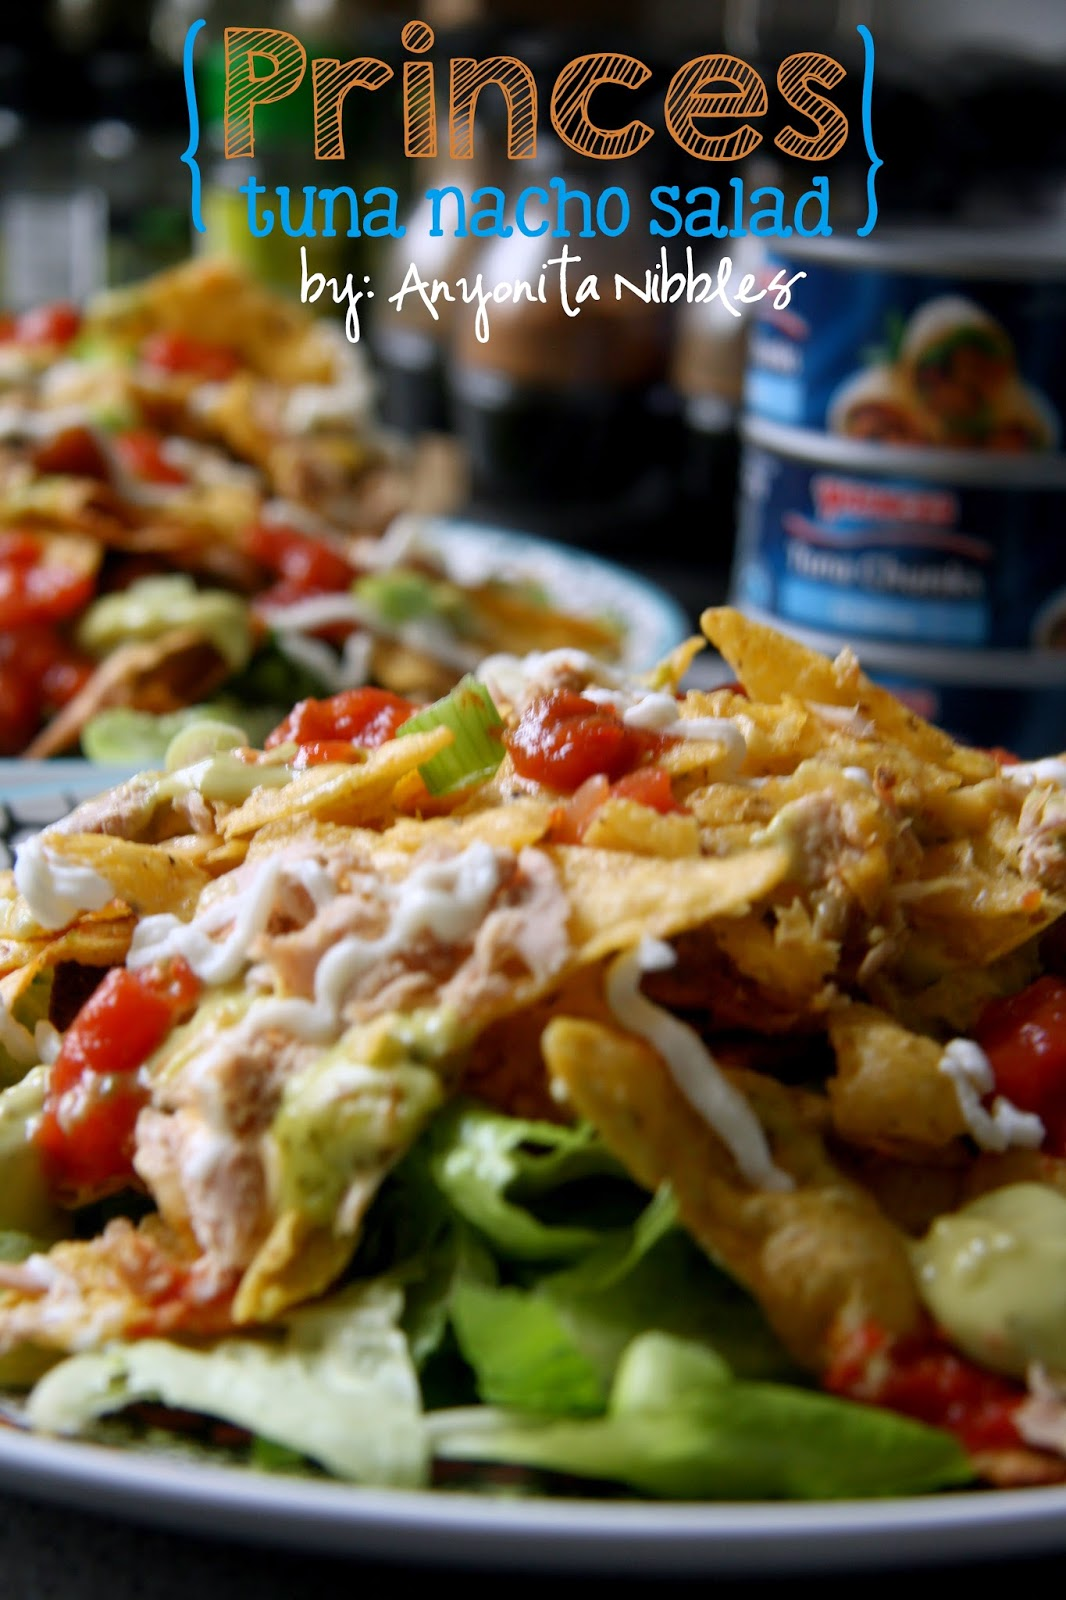 Princes Gluten Free Tuna Nacho Salad from Anyonita-nibbles.co.uk